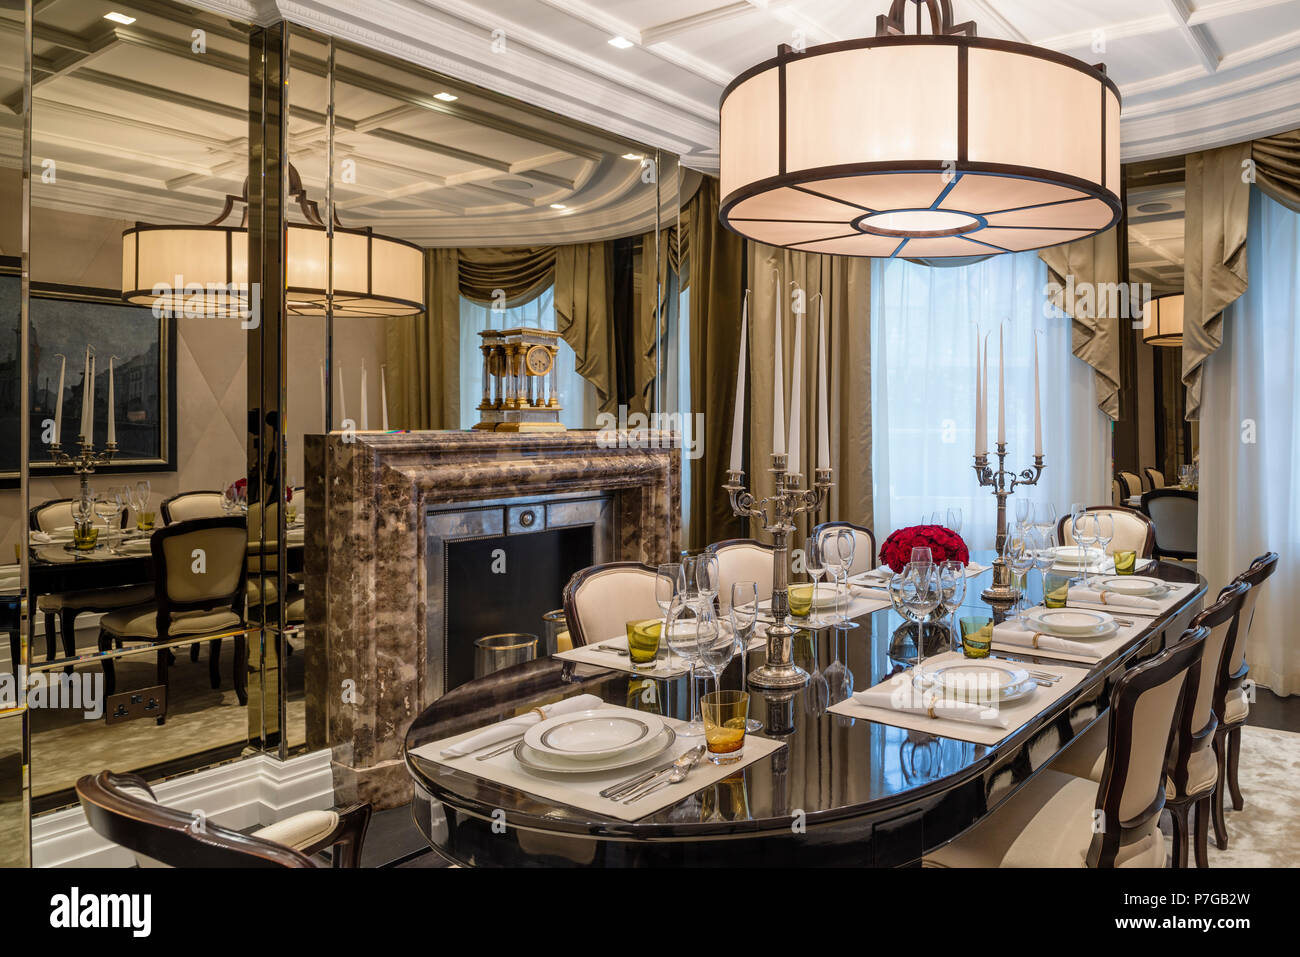 Art deco dining room Stock Photo: 211186945 - Alamy